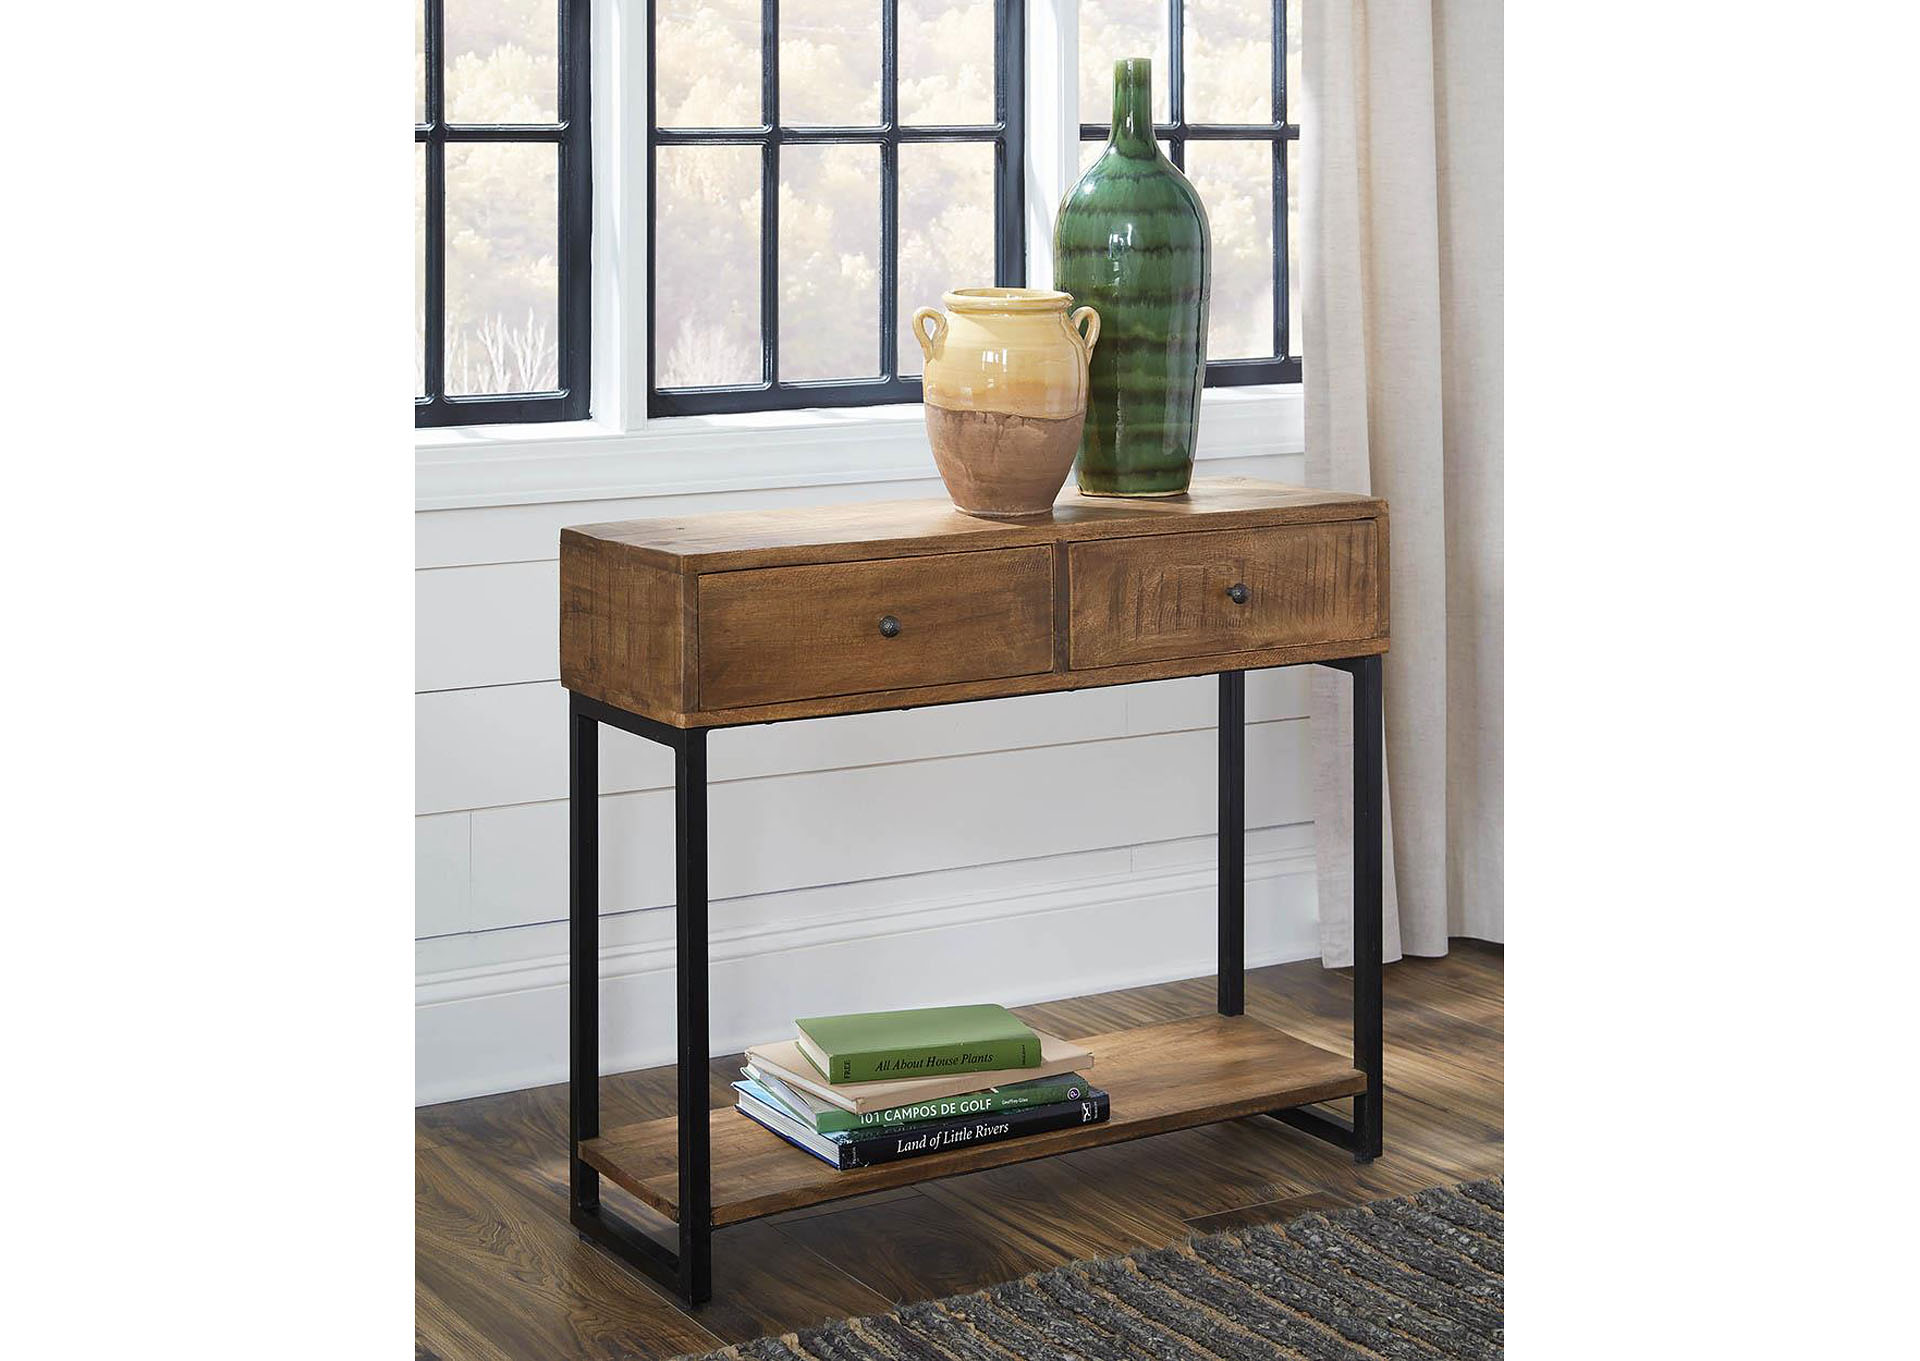 Natural 2-Drawer Console Table,Coaster Furniture